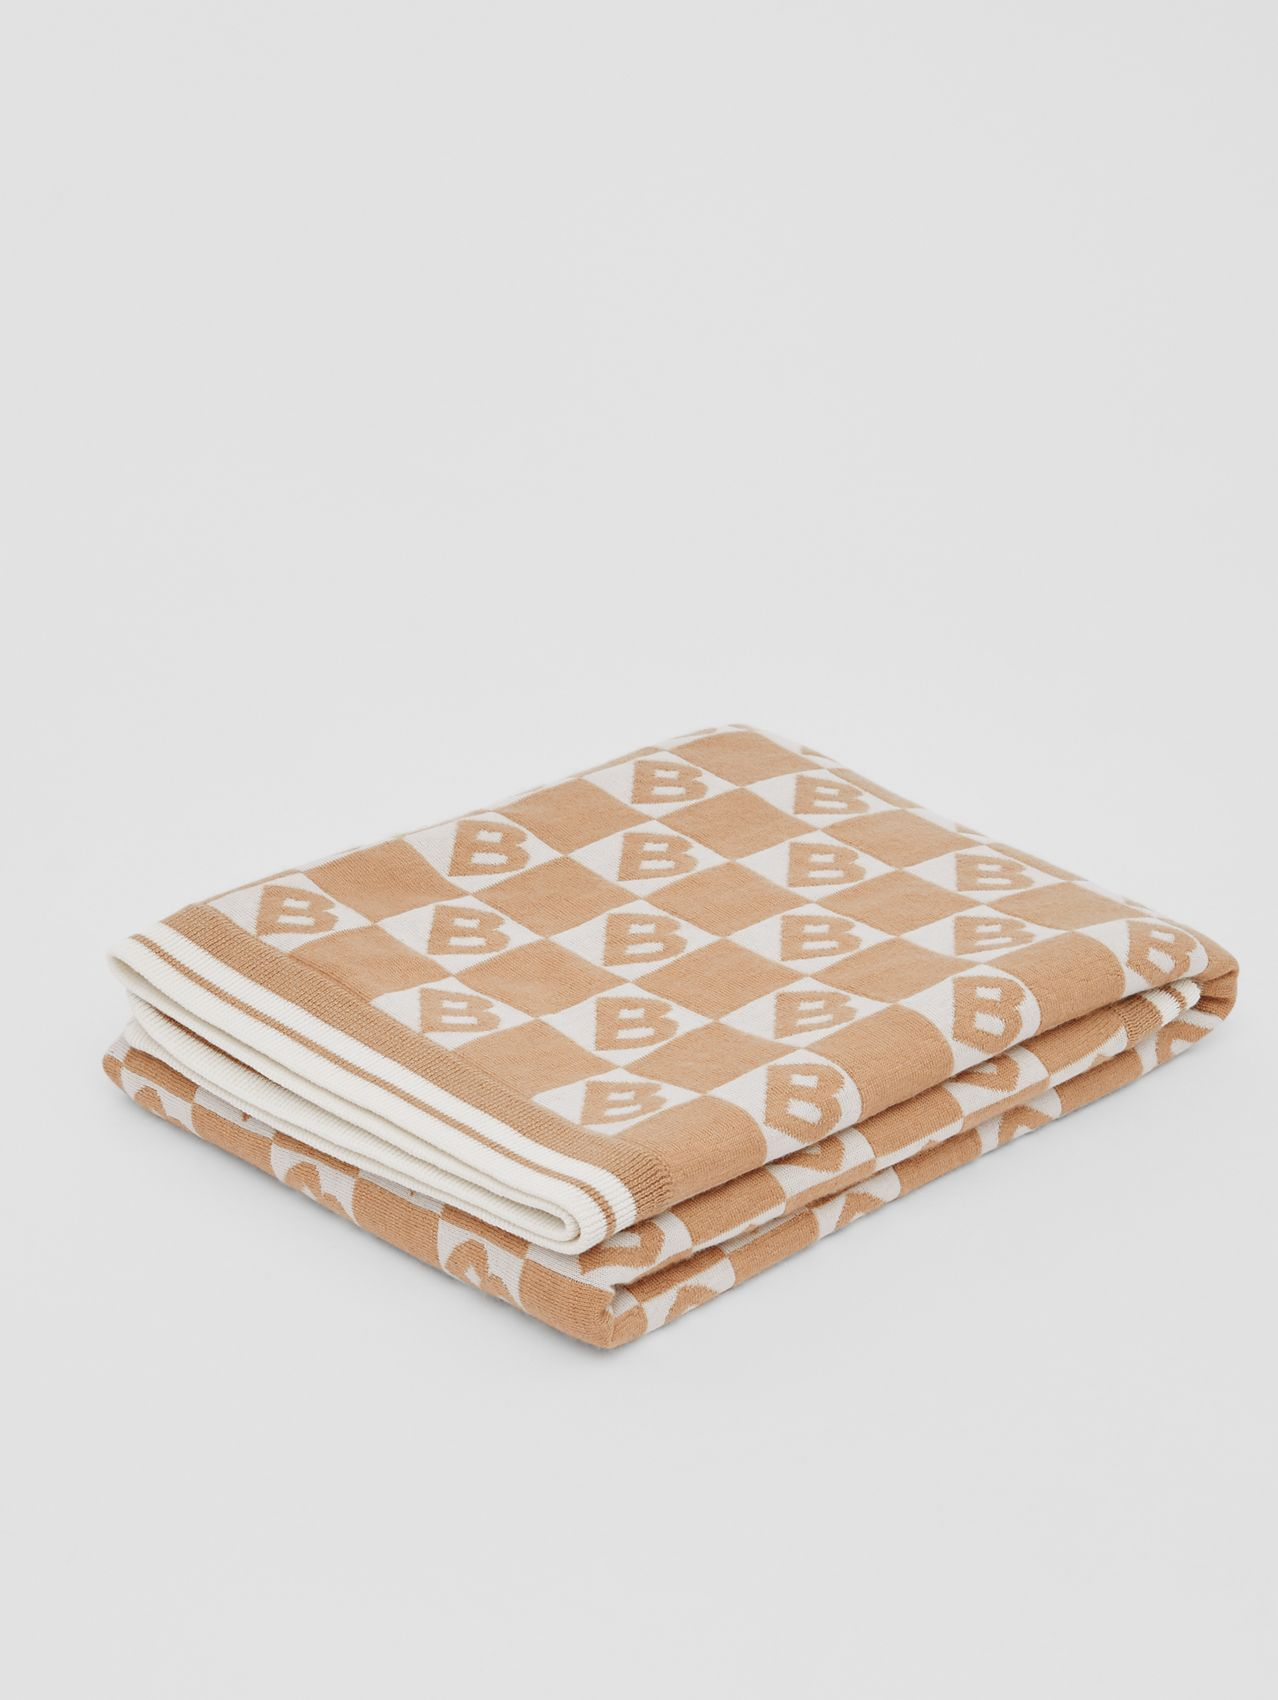 B Motif Cotton Merino Wool Cashmere Baby Blanket in Light Camel